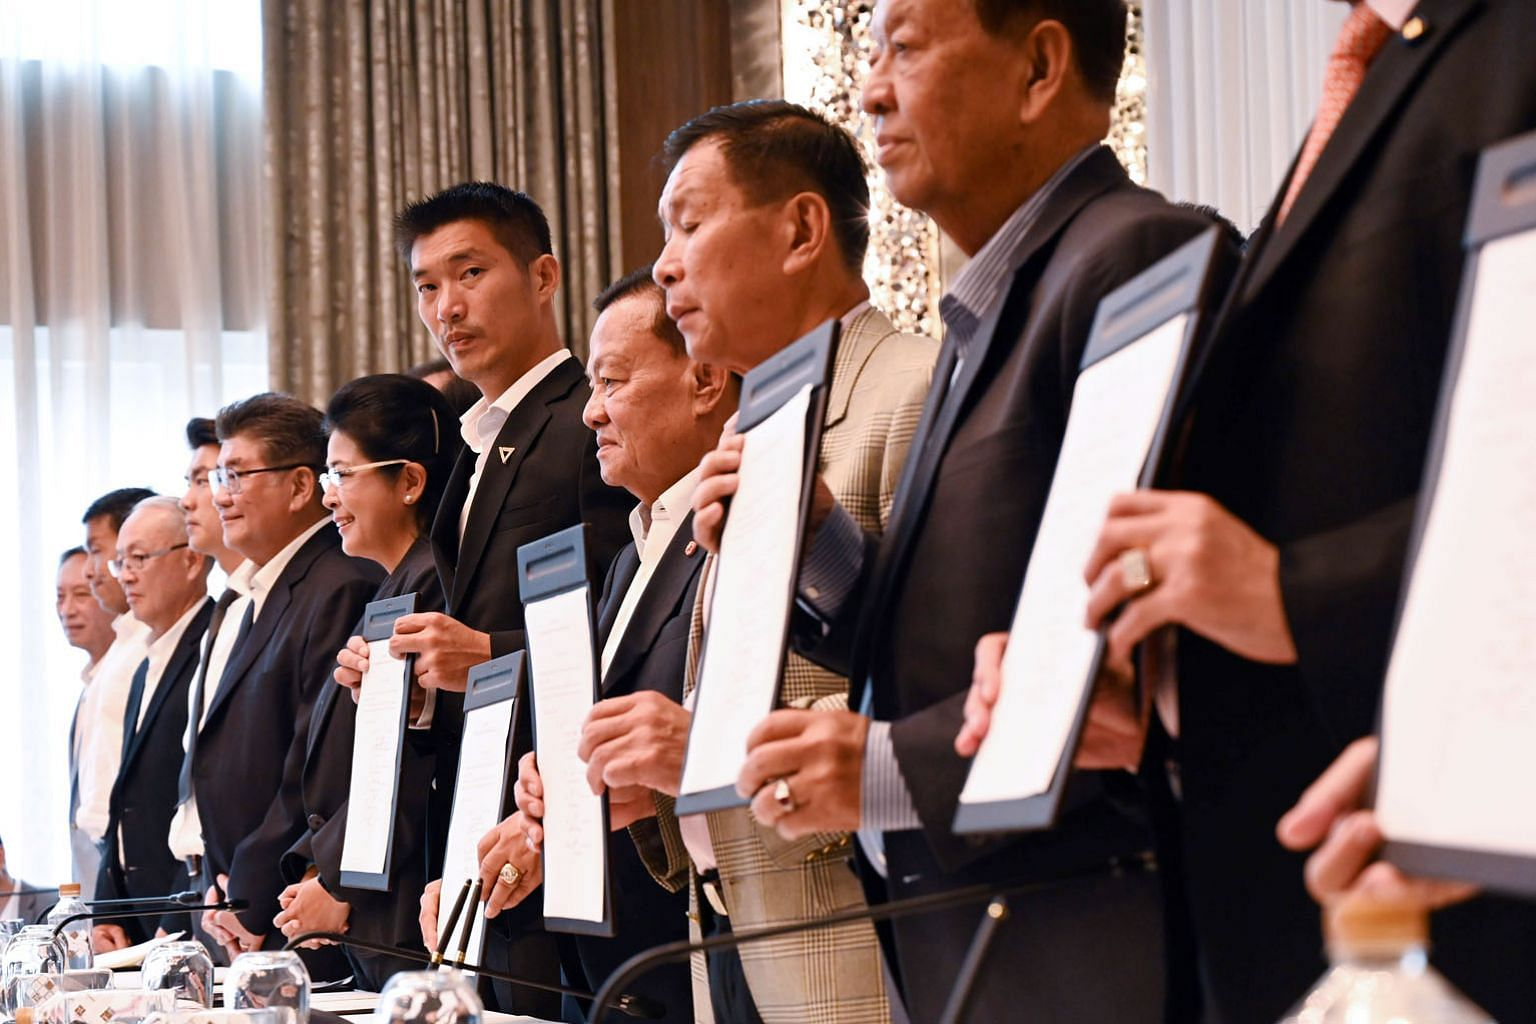 Leaders of different Thai political parties showing signed documents during a press conference in Bangkok yesterday. Several anti-junta parties formed a coalition in Thailand yesterday, vowing to thwart the pro-military Palang Pracharath Party in a bid to